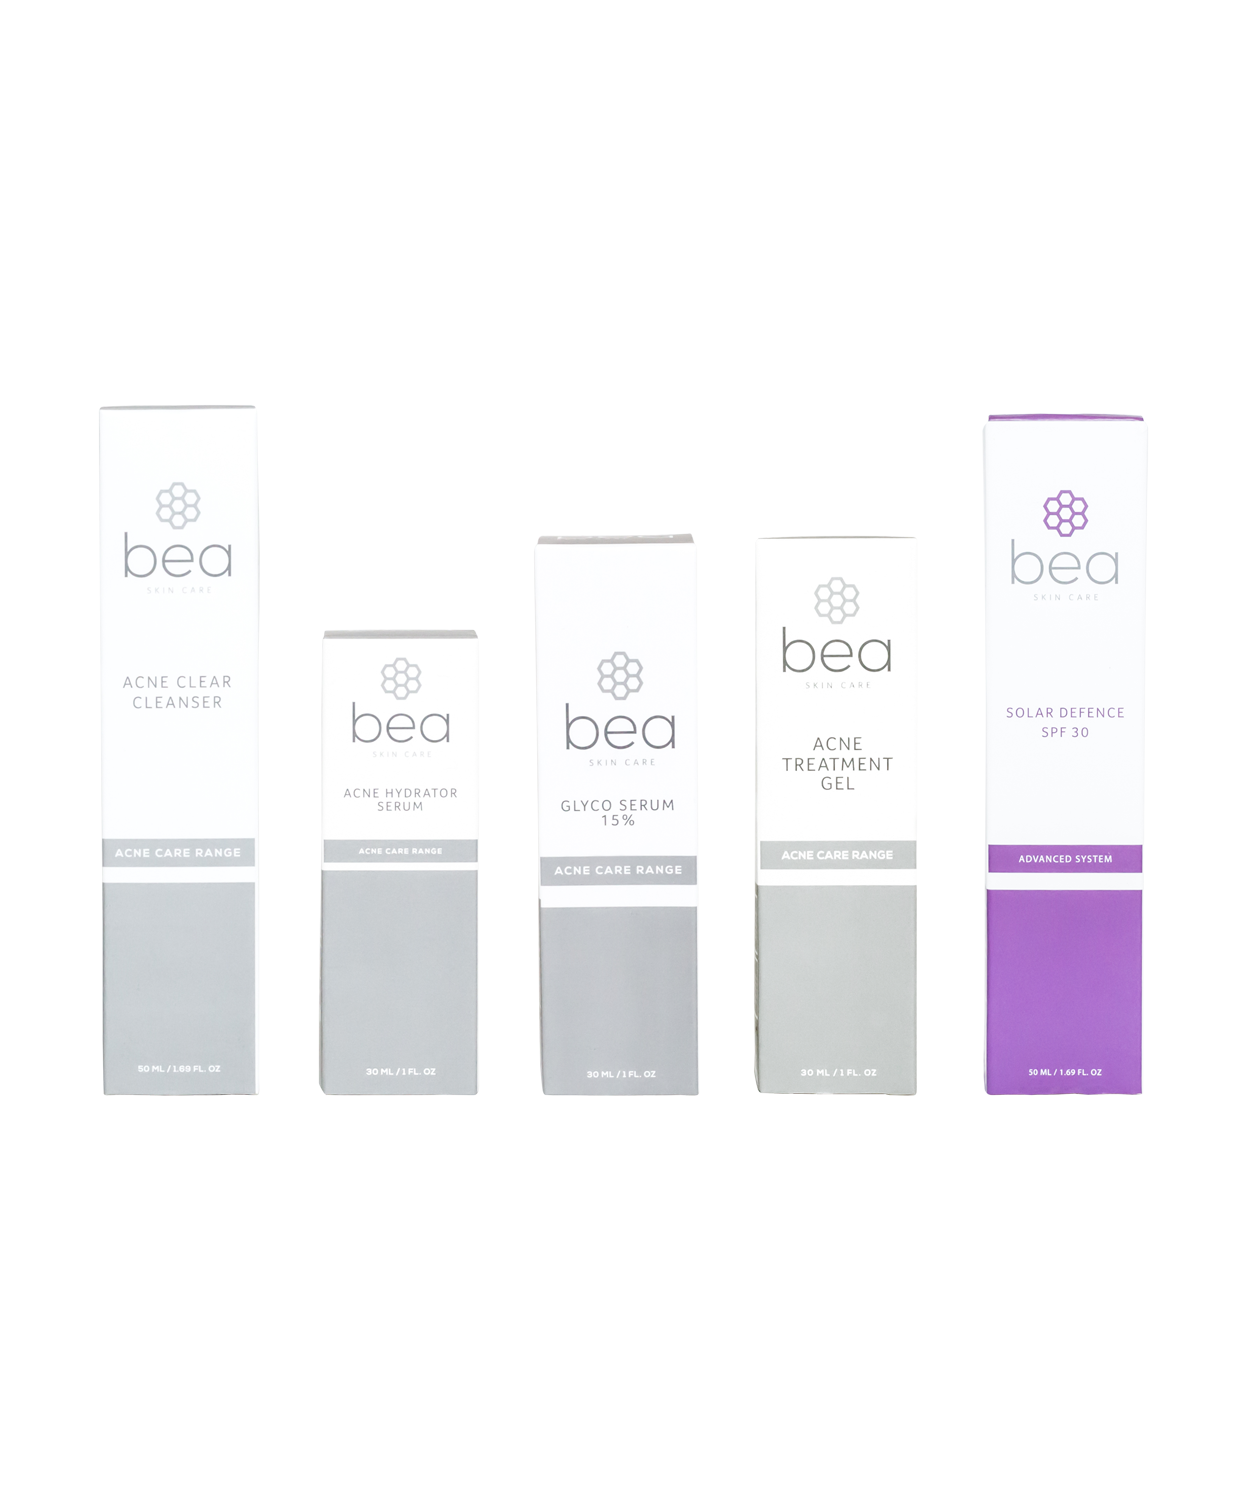 Acne Care Kit Sets bea Skin Care